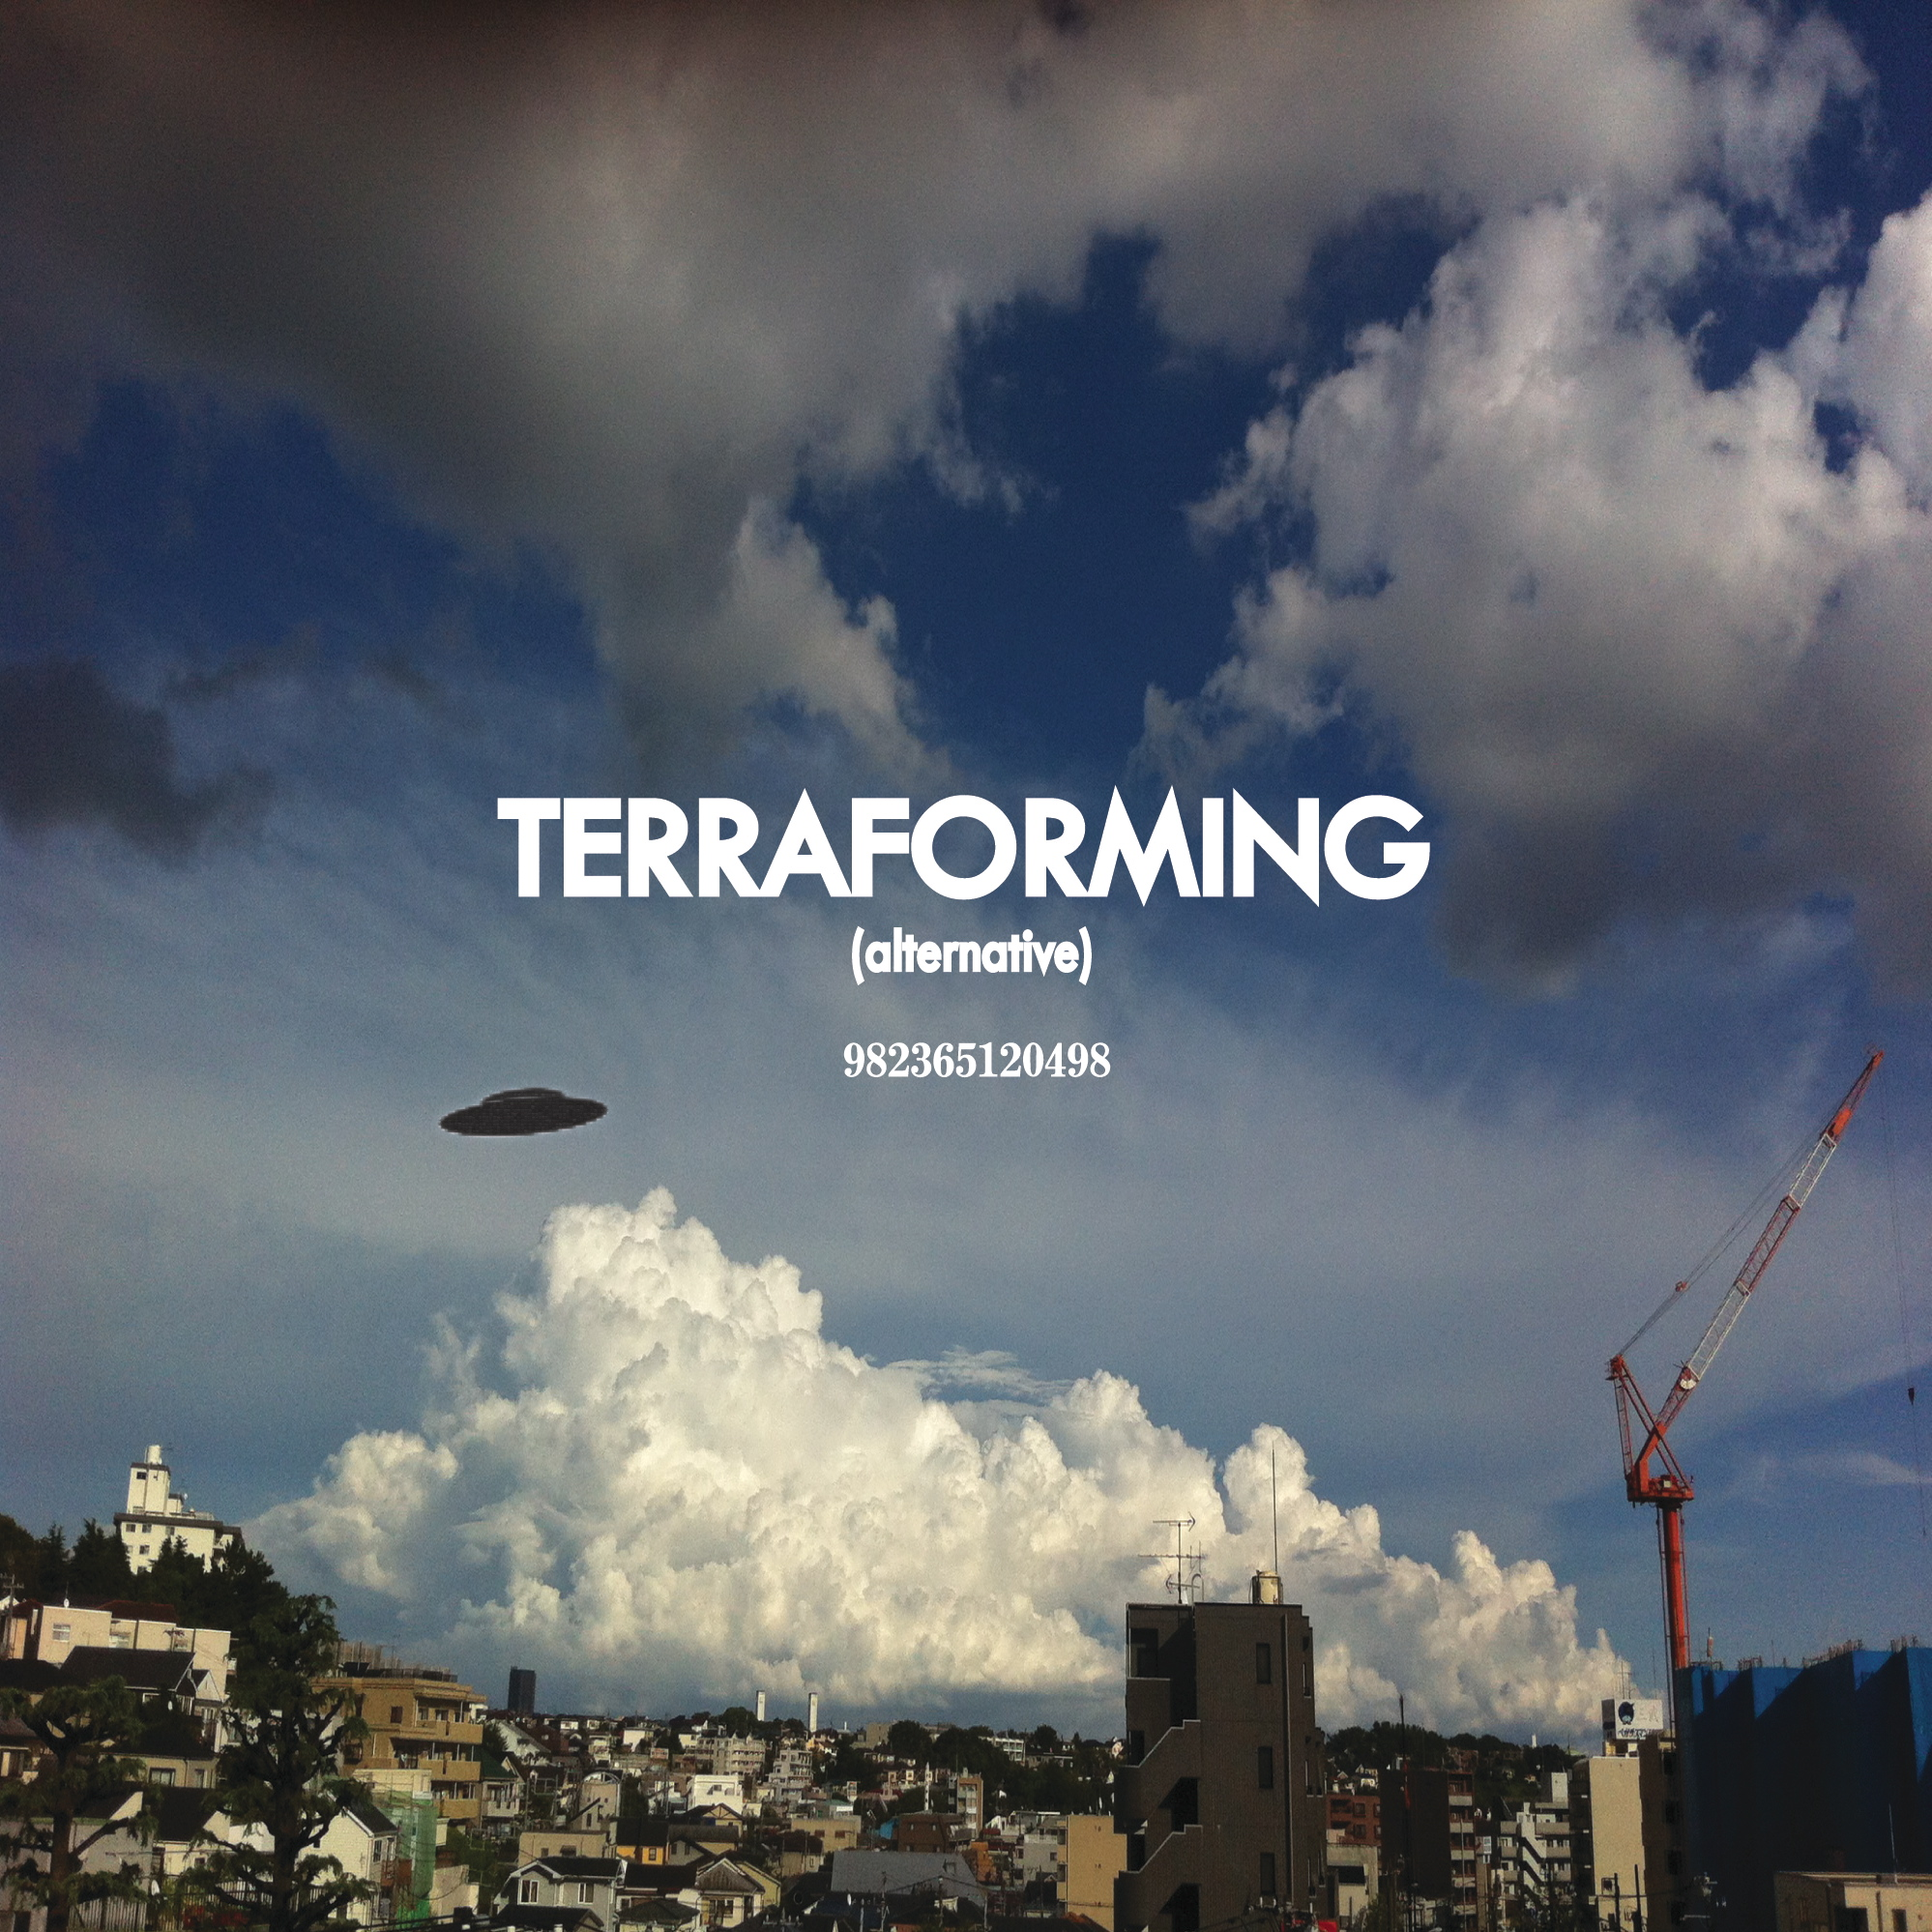 Terraforming%20%28alternative%29%20Cover.jpg